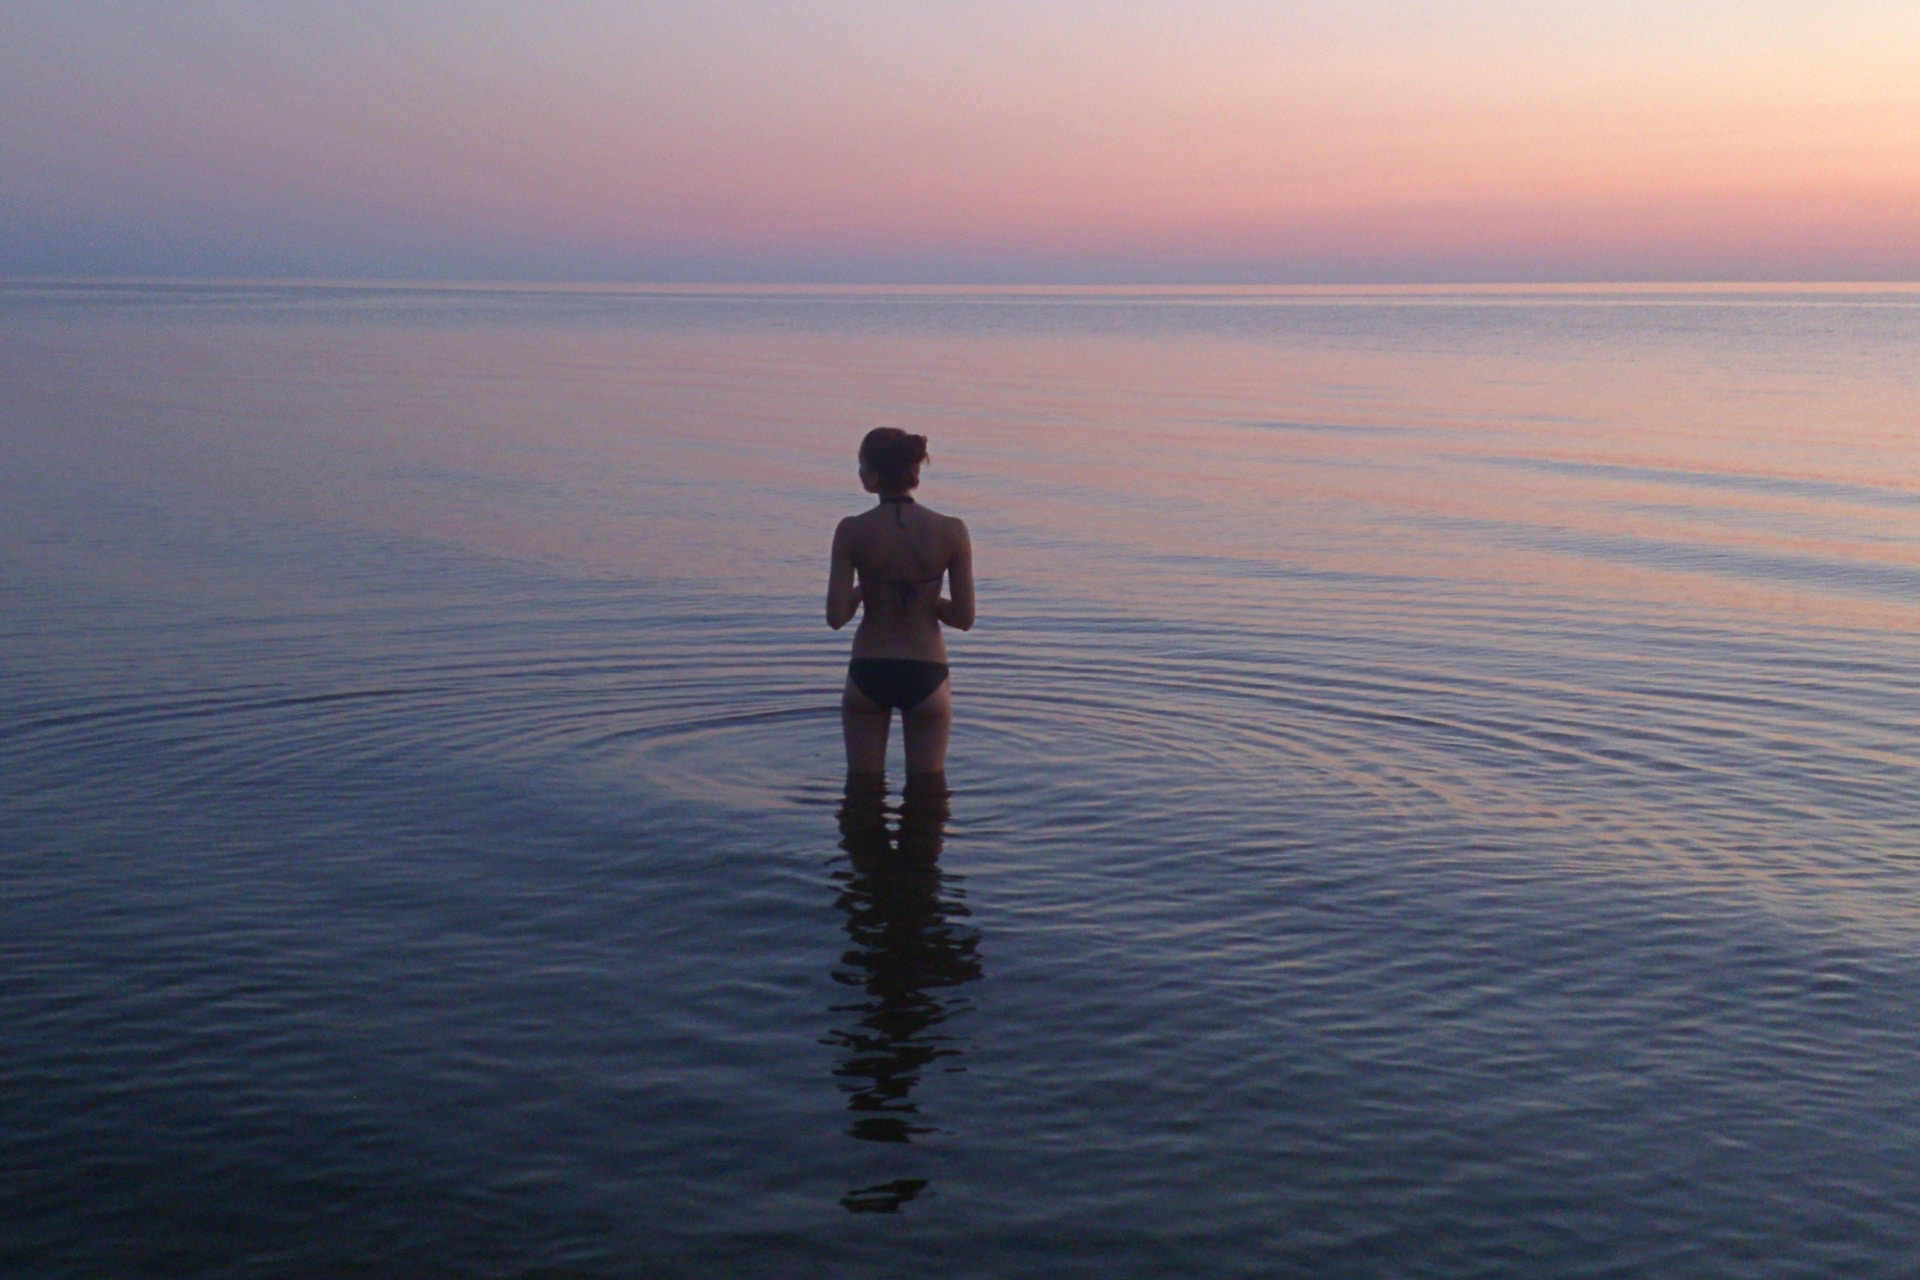 woman standing on body of water